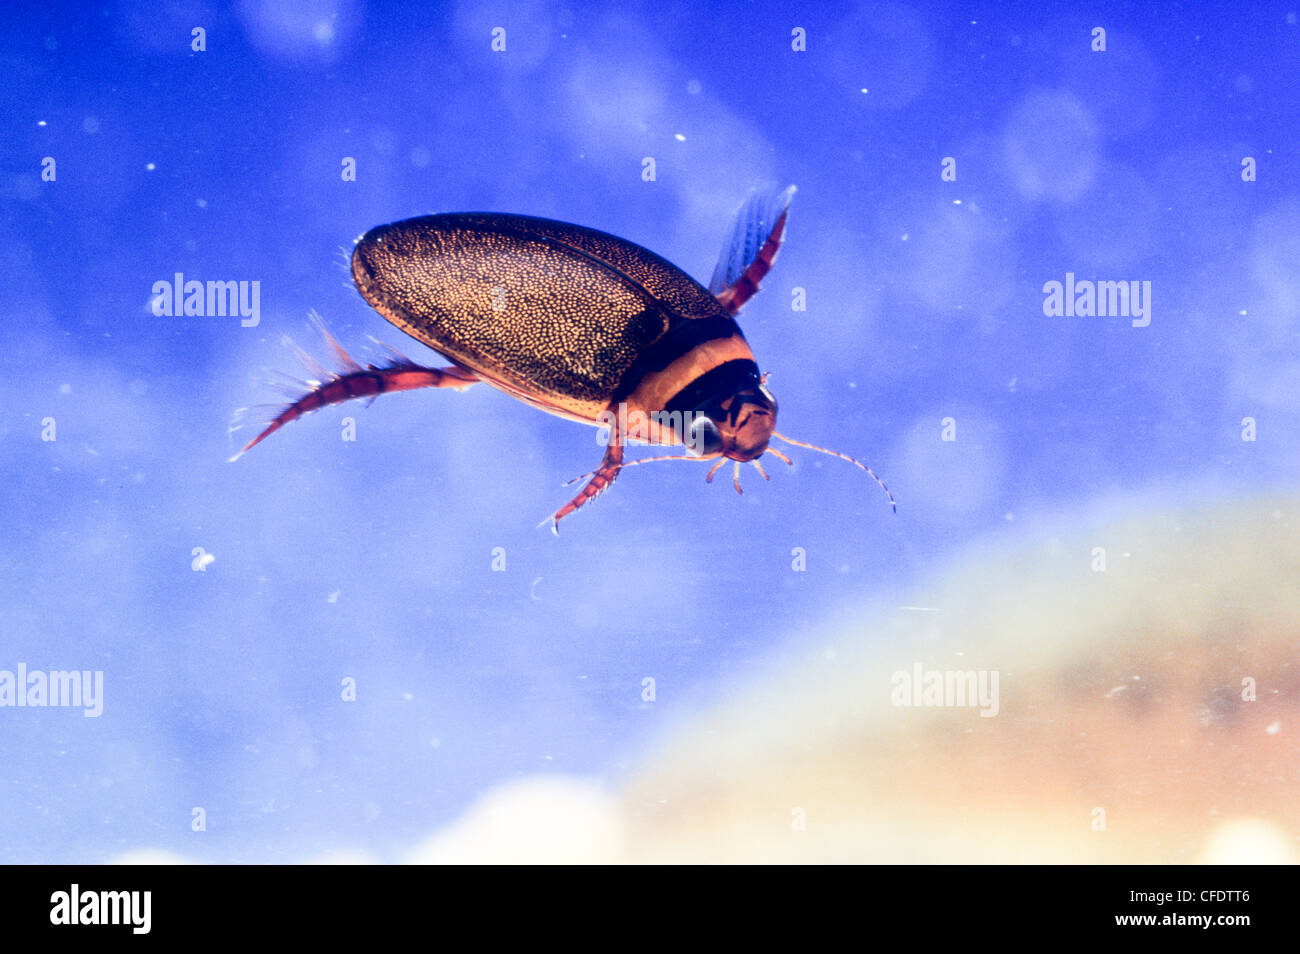 Small Flat Diving Beetle (Acilius spp.) Stock Photo